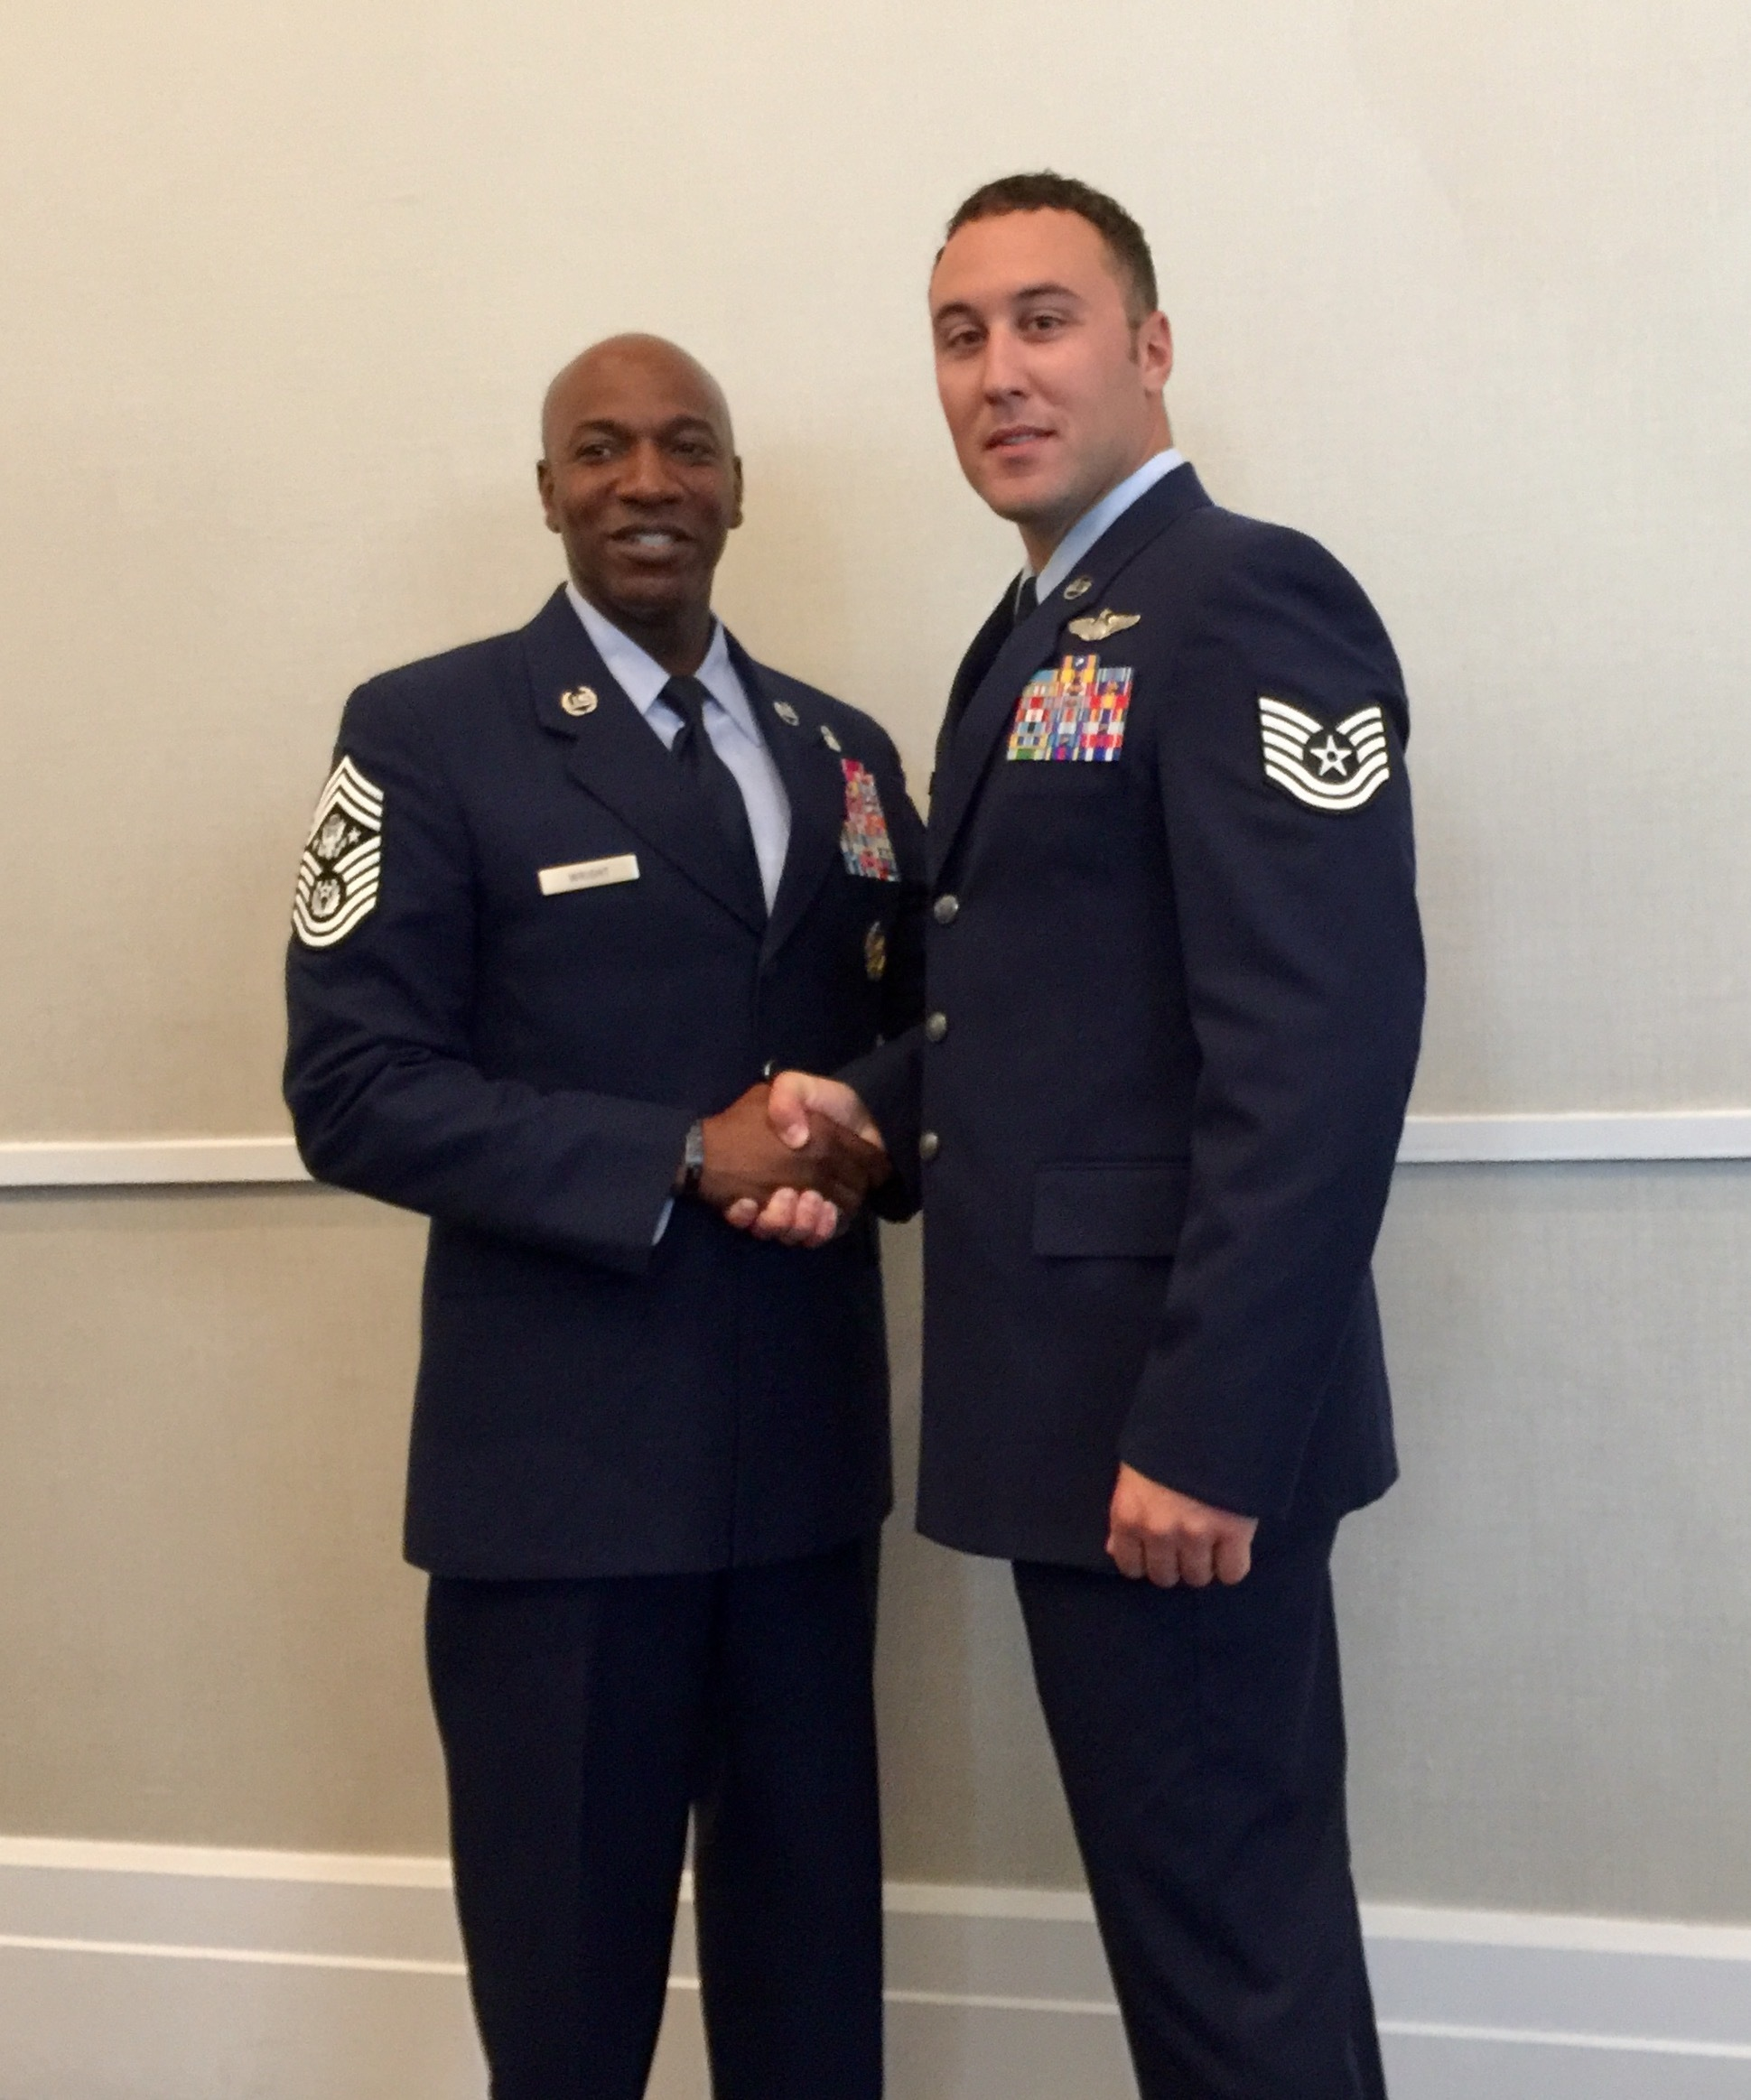 U.S. Air Force Tech. Sgt. Kade Bollinger poses for a photo with Chief Master Sergeant of the Air Force Kaleth Wright following his award recognition Sept. 18, 2017, at the Air Force Association National Convention in Washington D.C. Bollinger was a member of the crew that received the Air Force level award for the heroic actions following an aircraft mishap. (Courtesy photo)